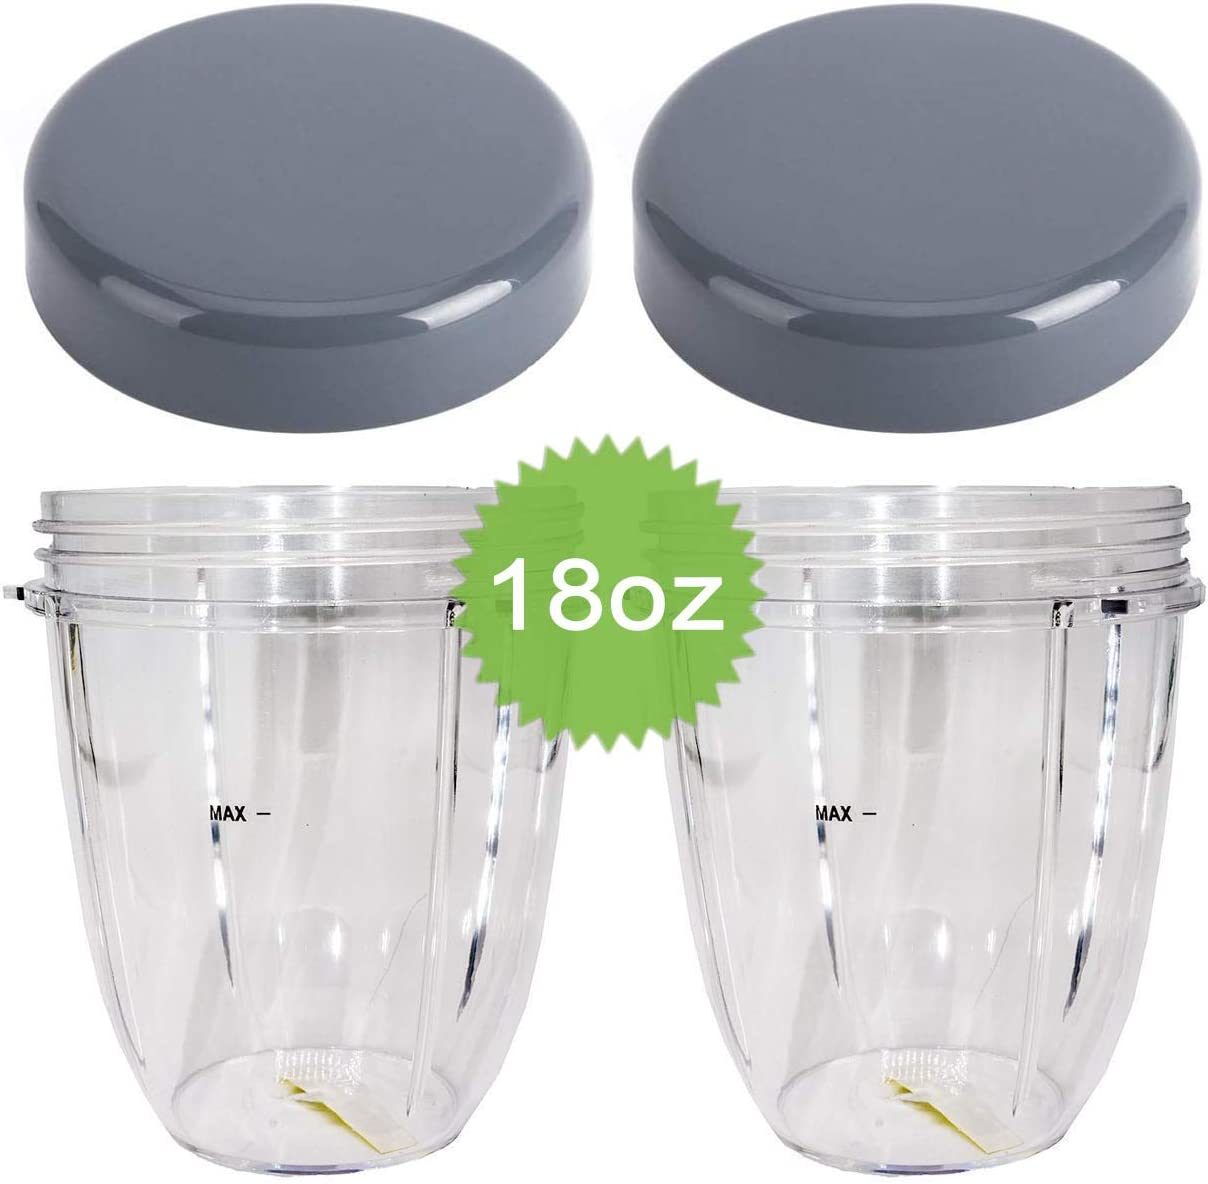 Dreld 2 Pack 18oz Cup with Flat Lid Replacement Parts Compatible with Nutribullet 600W 900W Blender Juicer